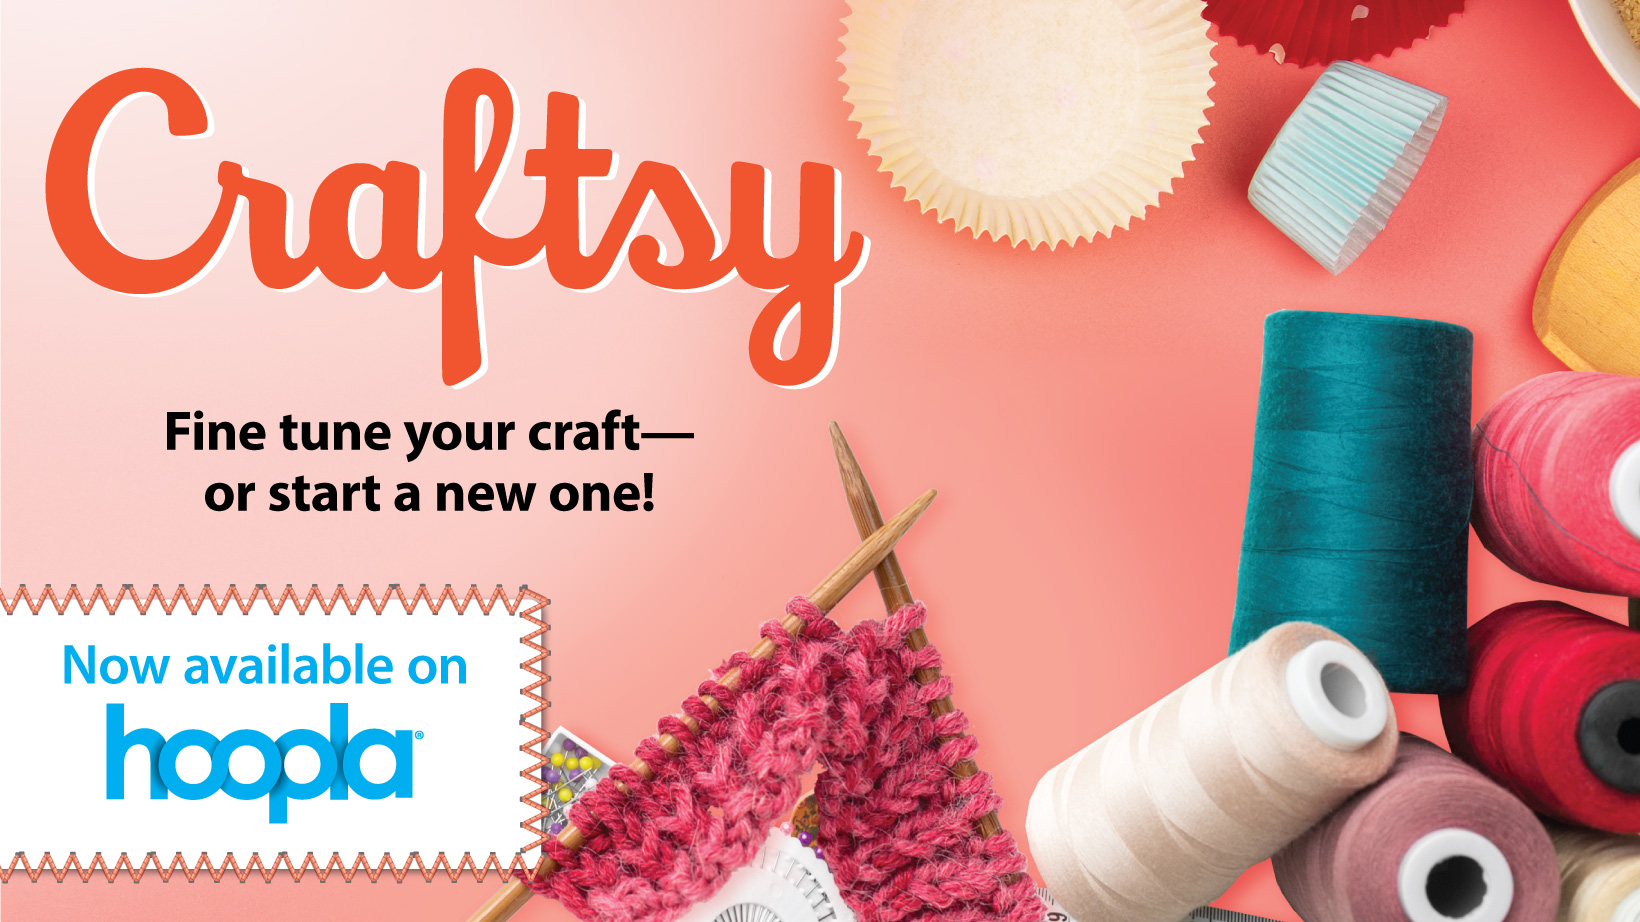 """A pink background with yarn, ribbon, and other crafting materials with the title """"Craftsy"""""""